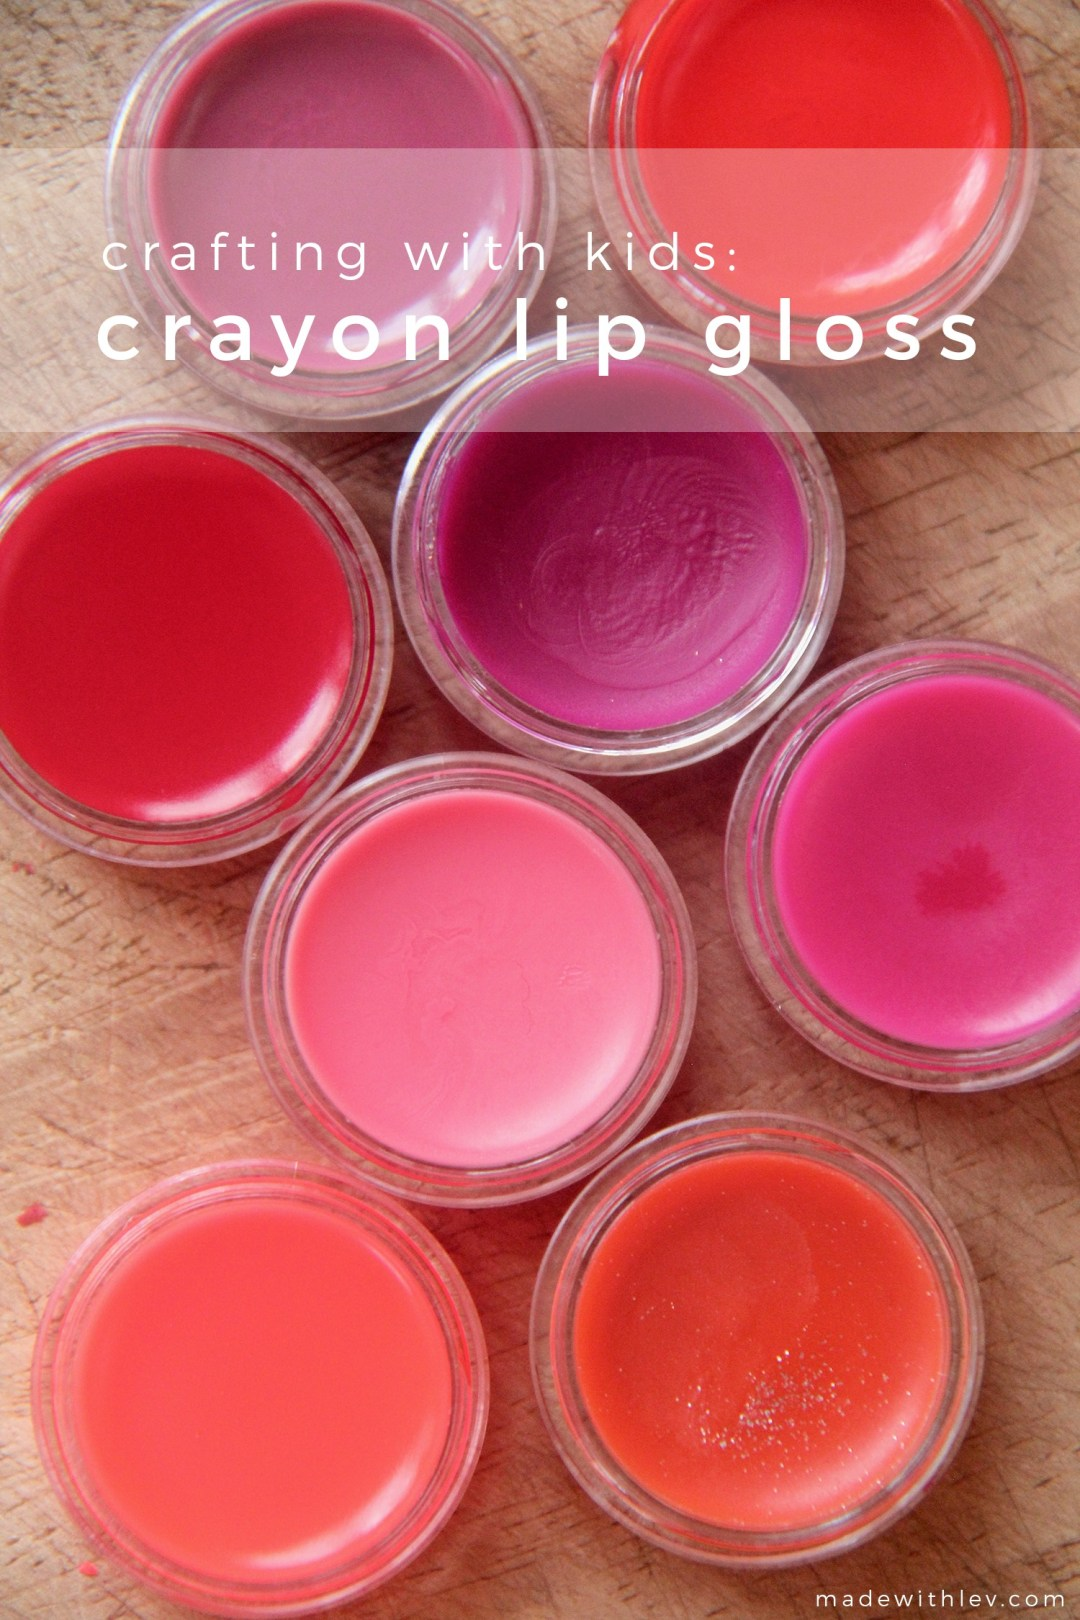 Crafting with kids: a 2-ingredient lip gloss made with crayons! | #diy #crafting #craftingwithkids #lipgloss #homemadelipbalm #lipbalm #crayons #kidscrafts #shescrafty